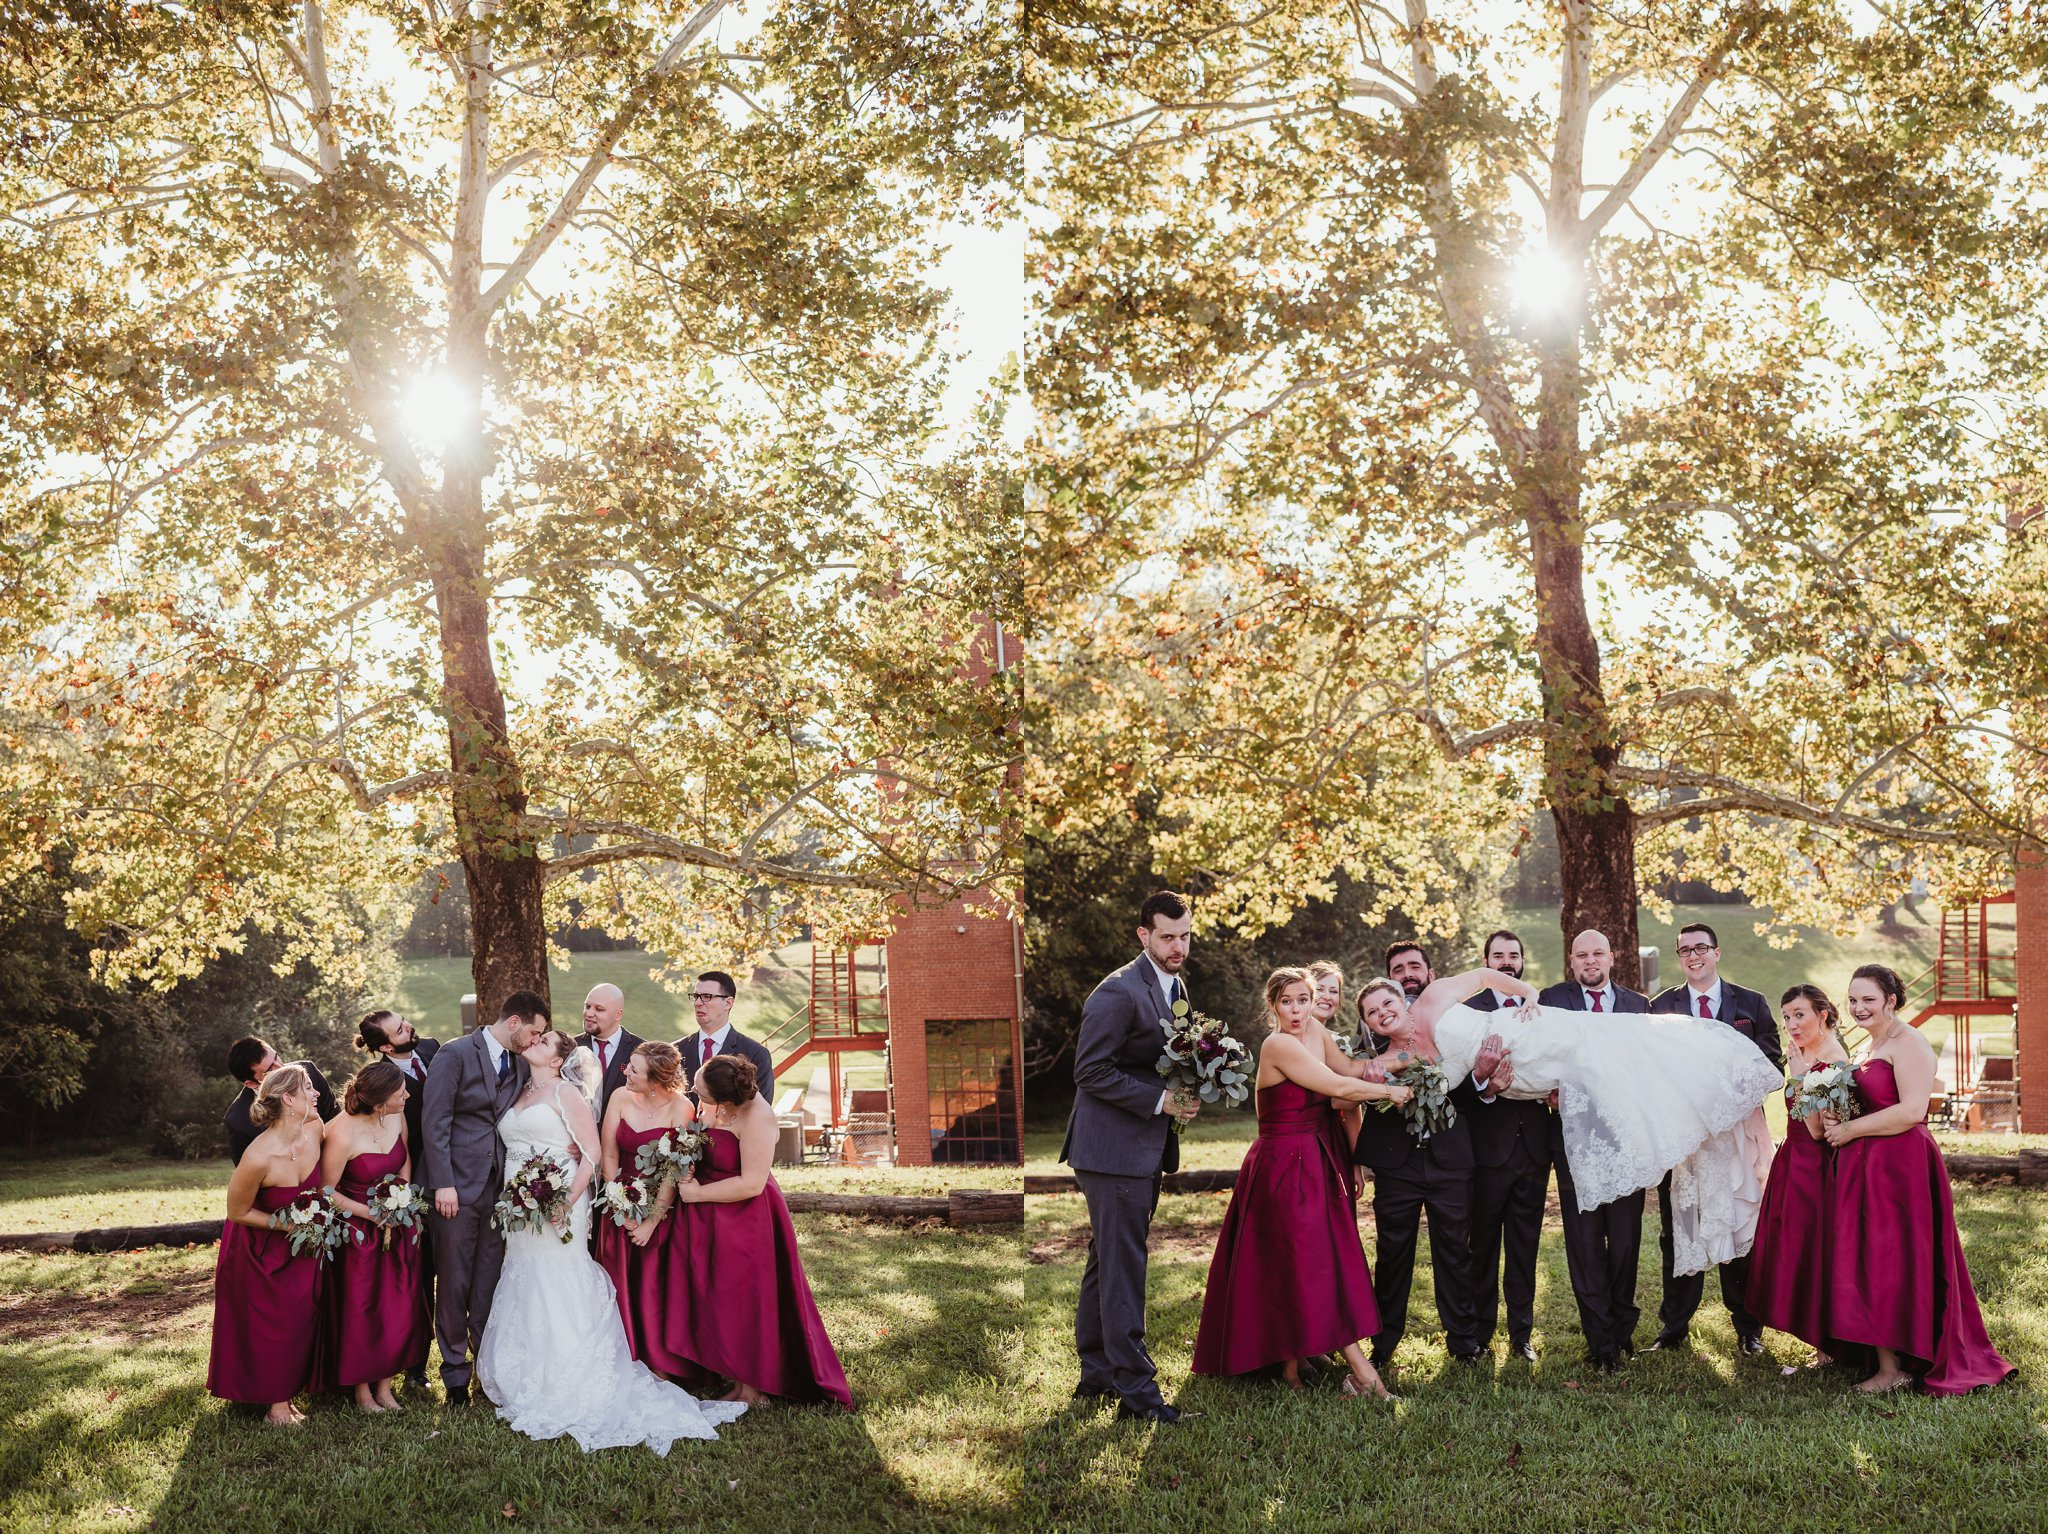 The bride and groom pose for pictures with their bridal party after their wedding ceremony in Raleigh, North Carolina, pictures by Rose Trail Images.